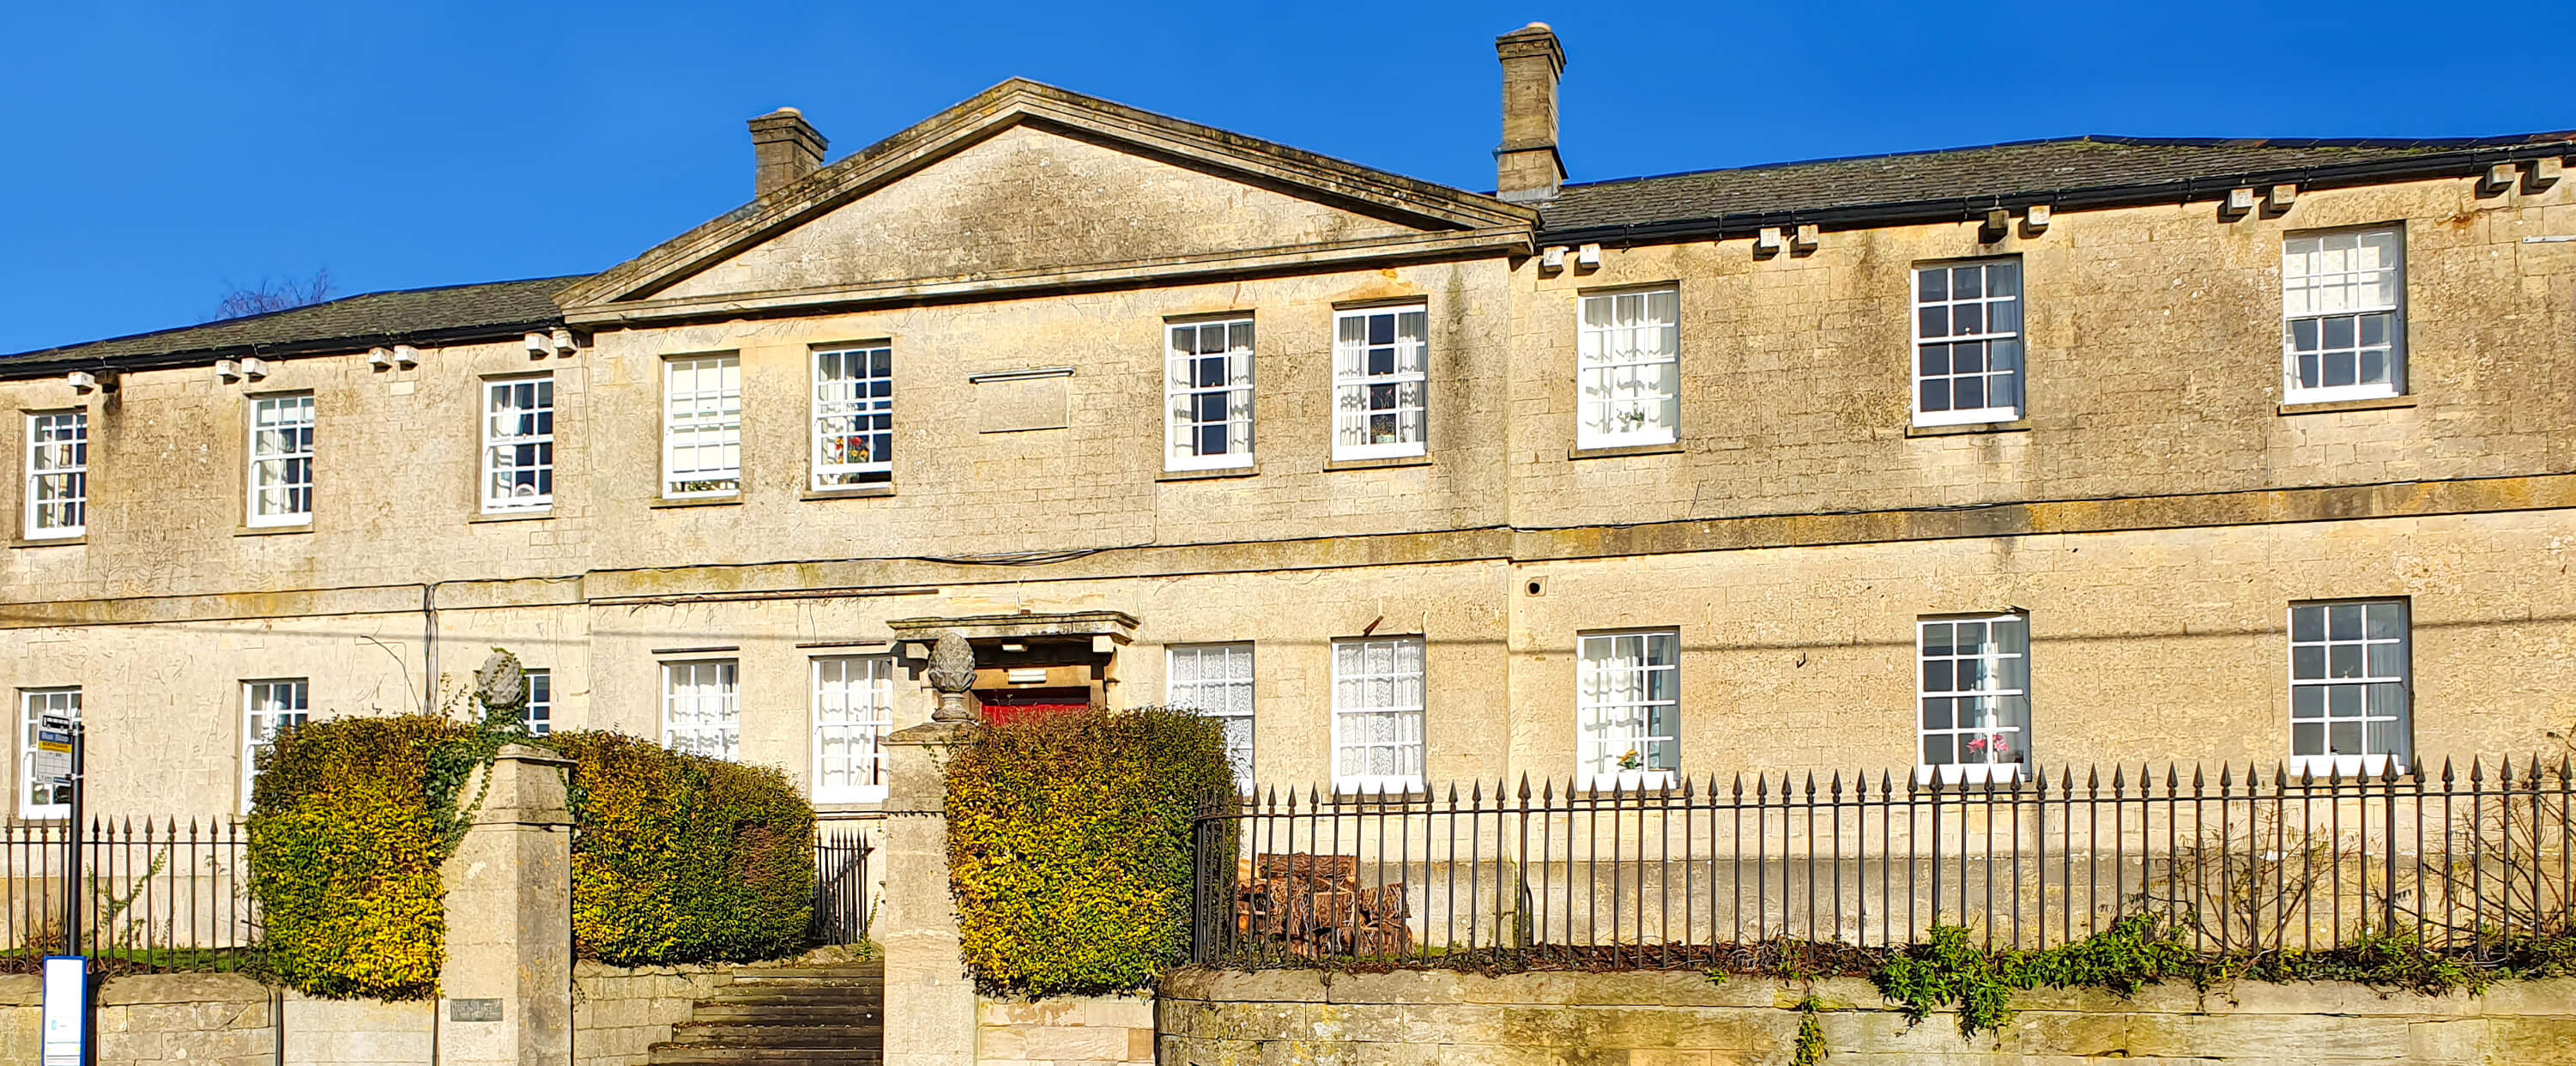 Northleach Court care home gloucestershire exterior